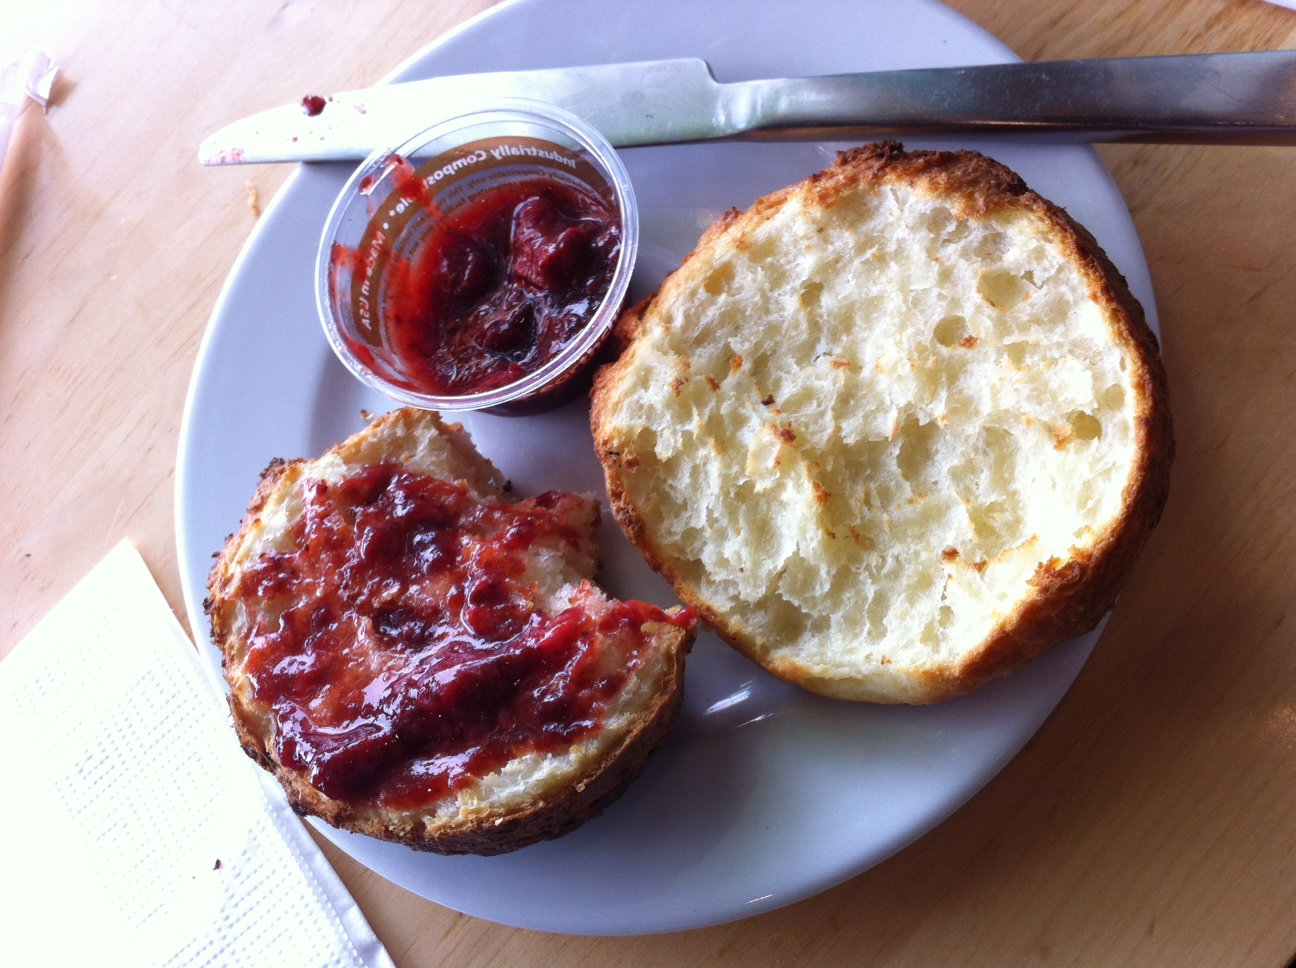 Seattle is know for its coffee, what surprised us were the scrumptious biscuits and jam that on many menus. Yum! Yum!